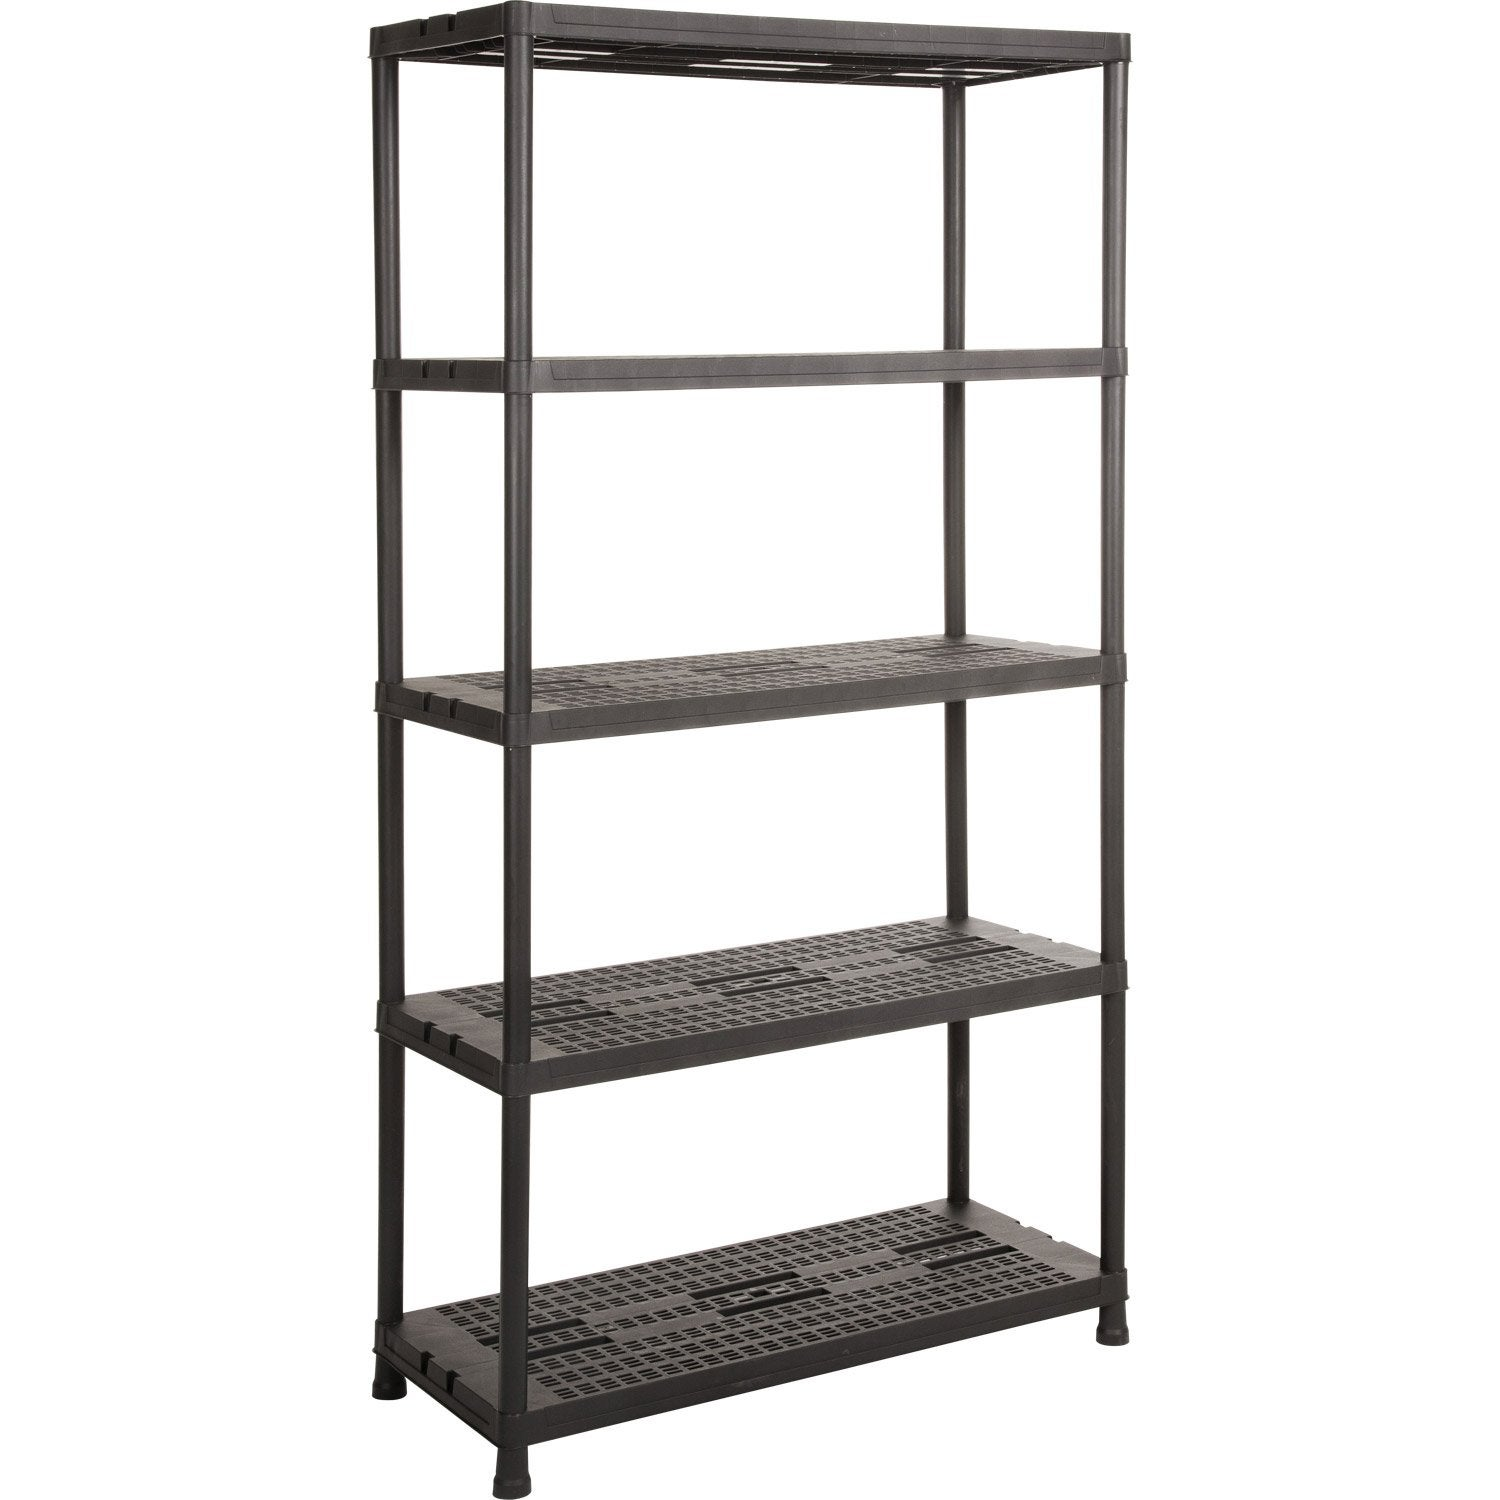 Etag re r sine 5 tablettes noir l90xh180xp40 cm leroy - Etagere modulable leroy merlin ...